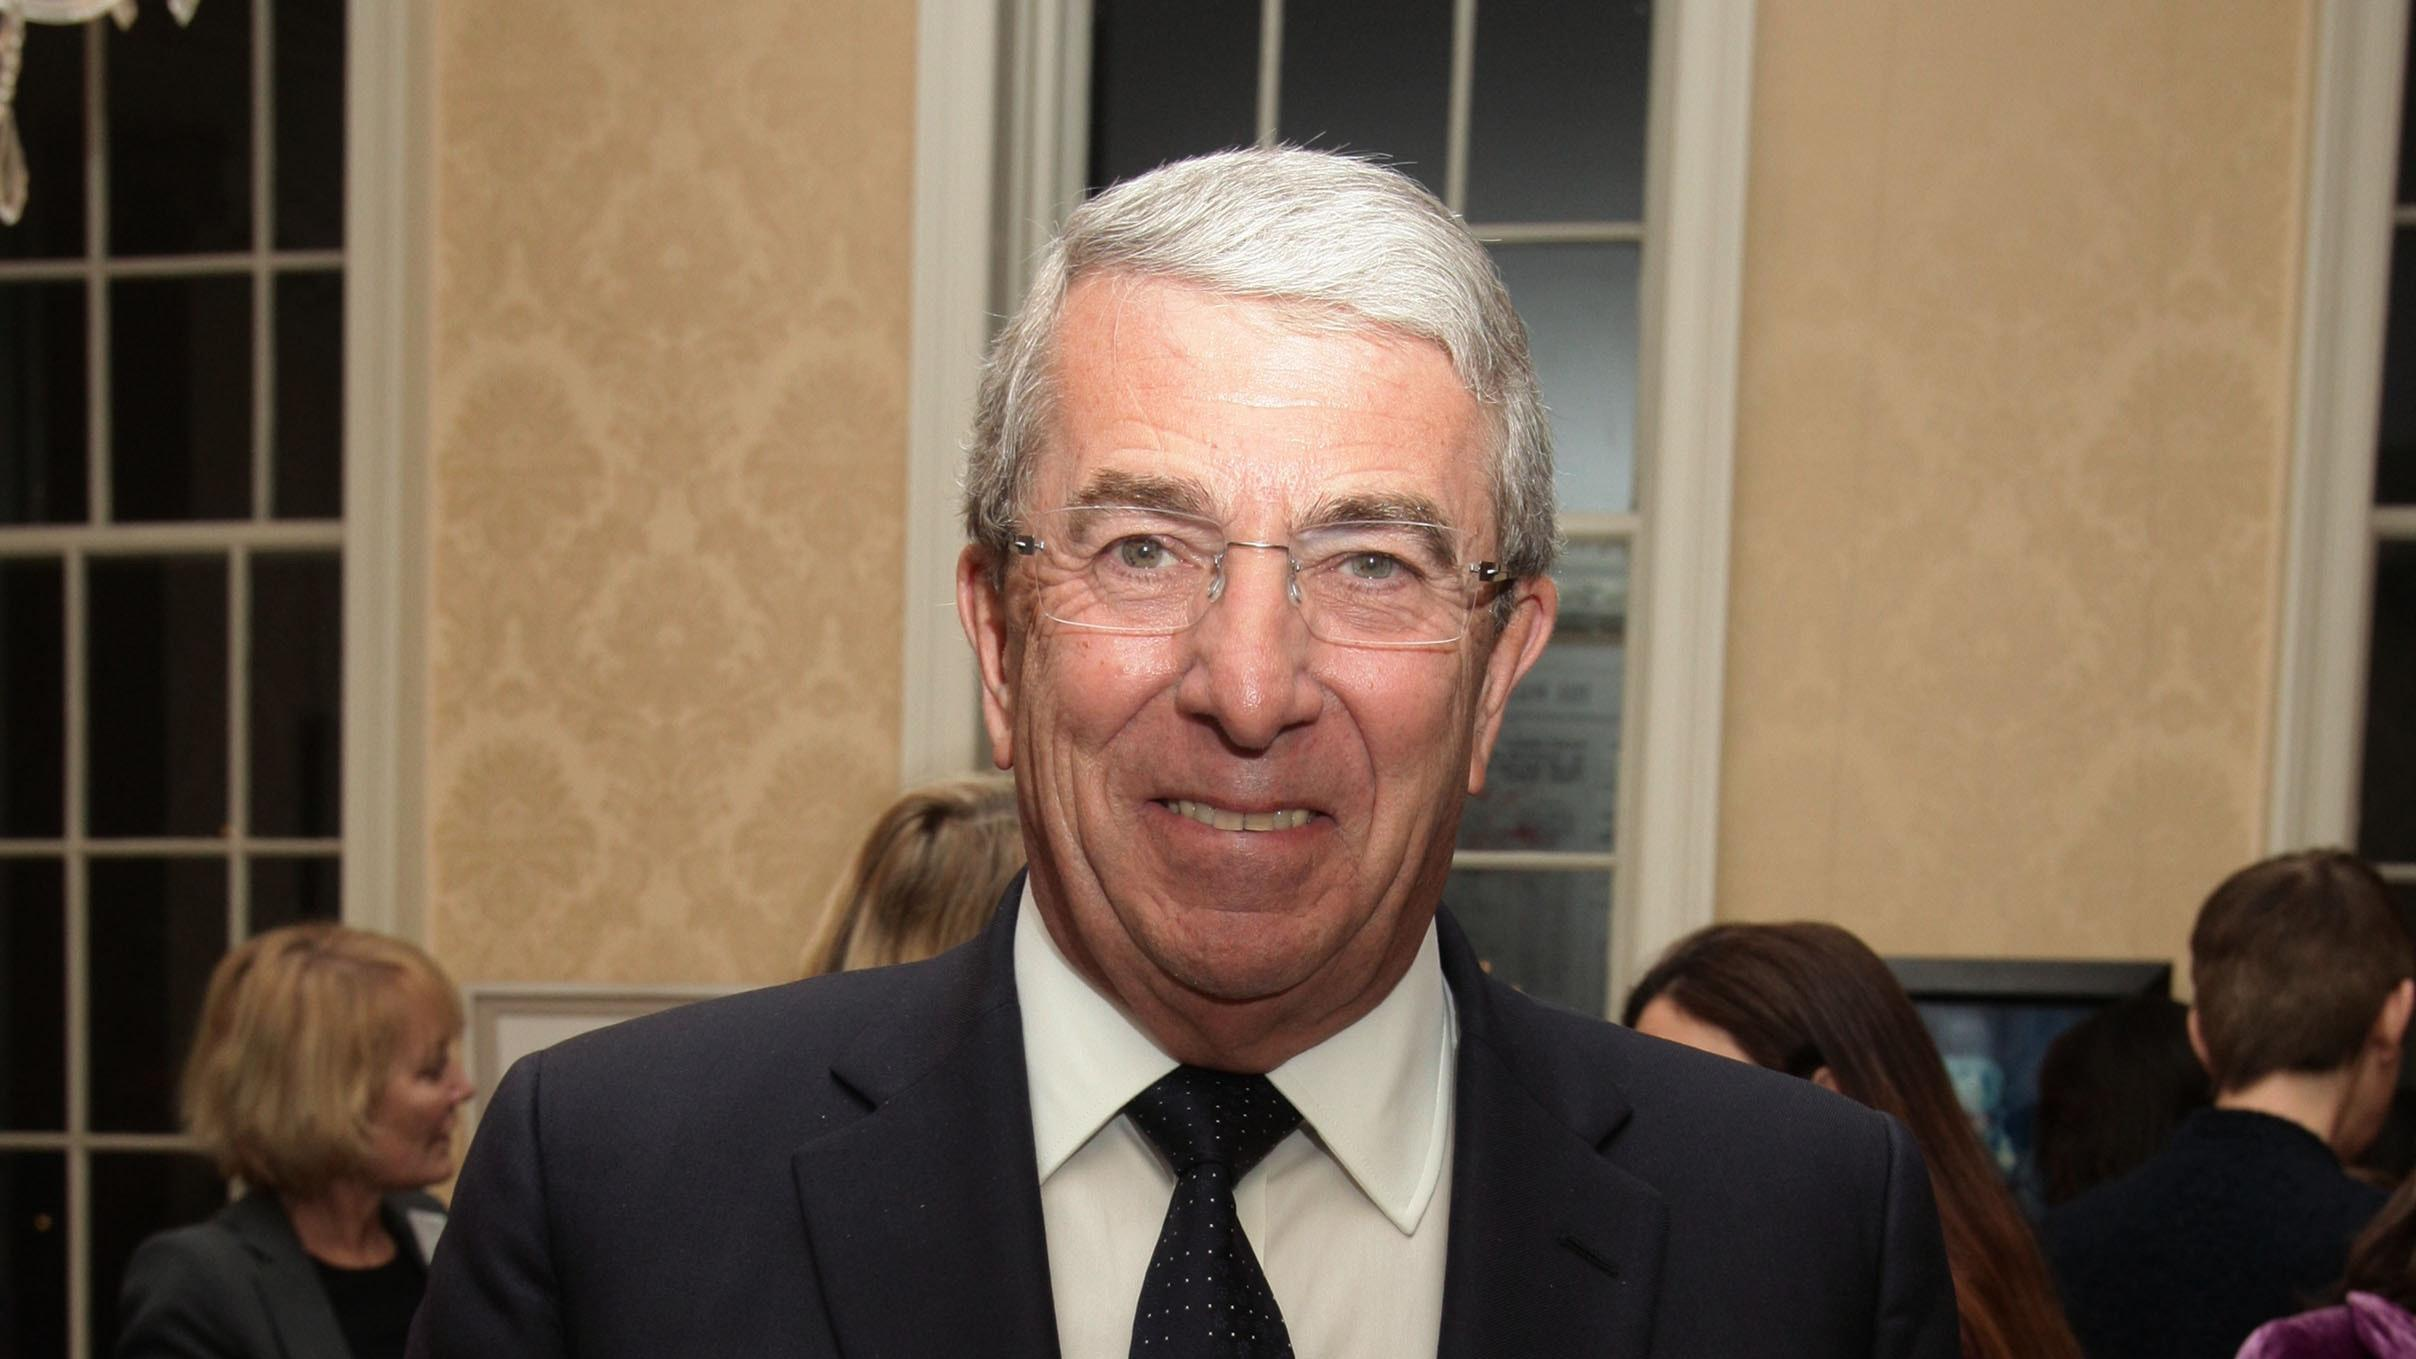 Sir Roger Carr becomes new chair of English National Ballet